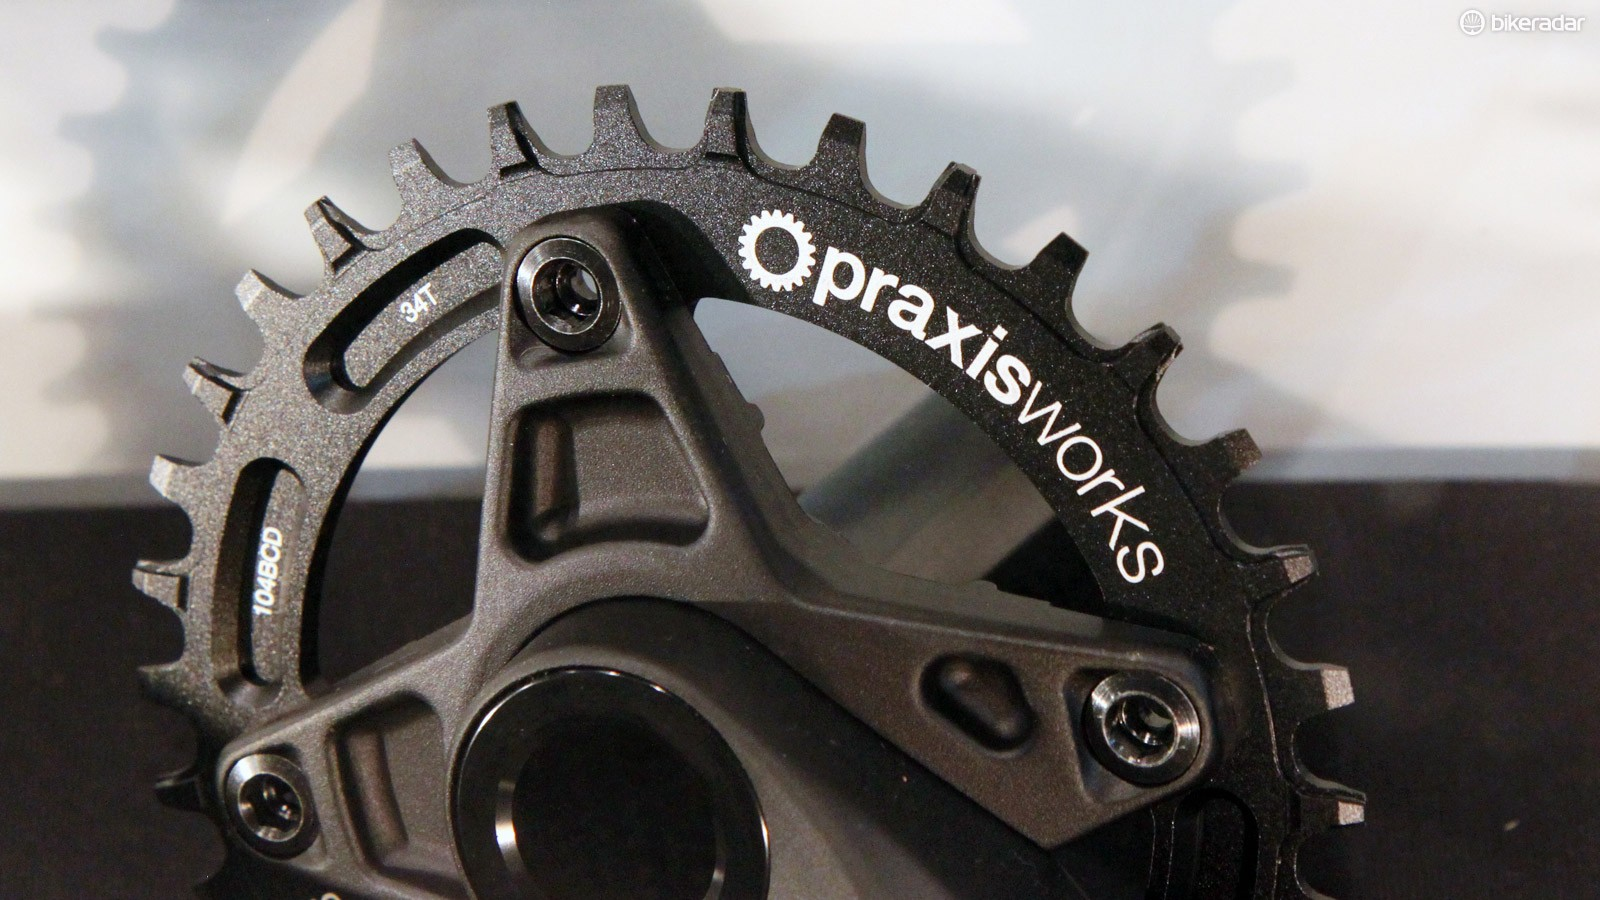 Praxis Works has finally released its long-awaited Wide/Narrow chainrings for 1x mountain bike drivetrains